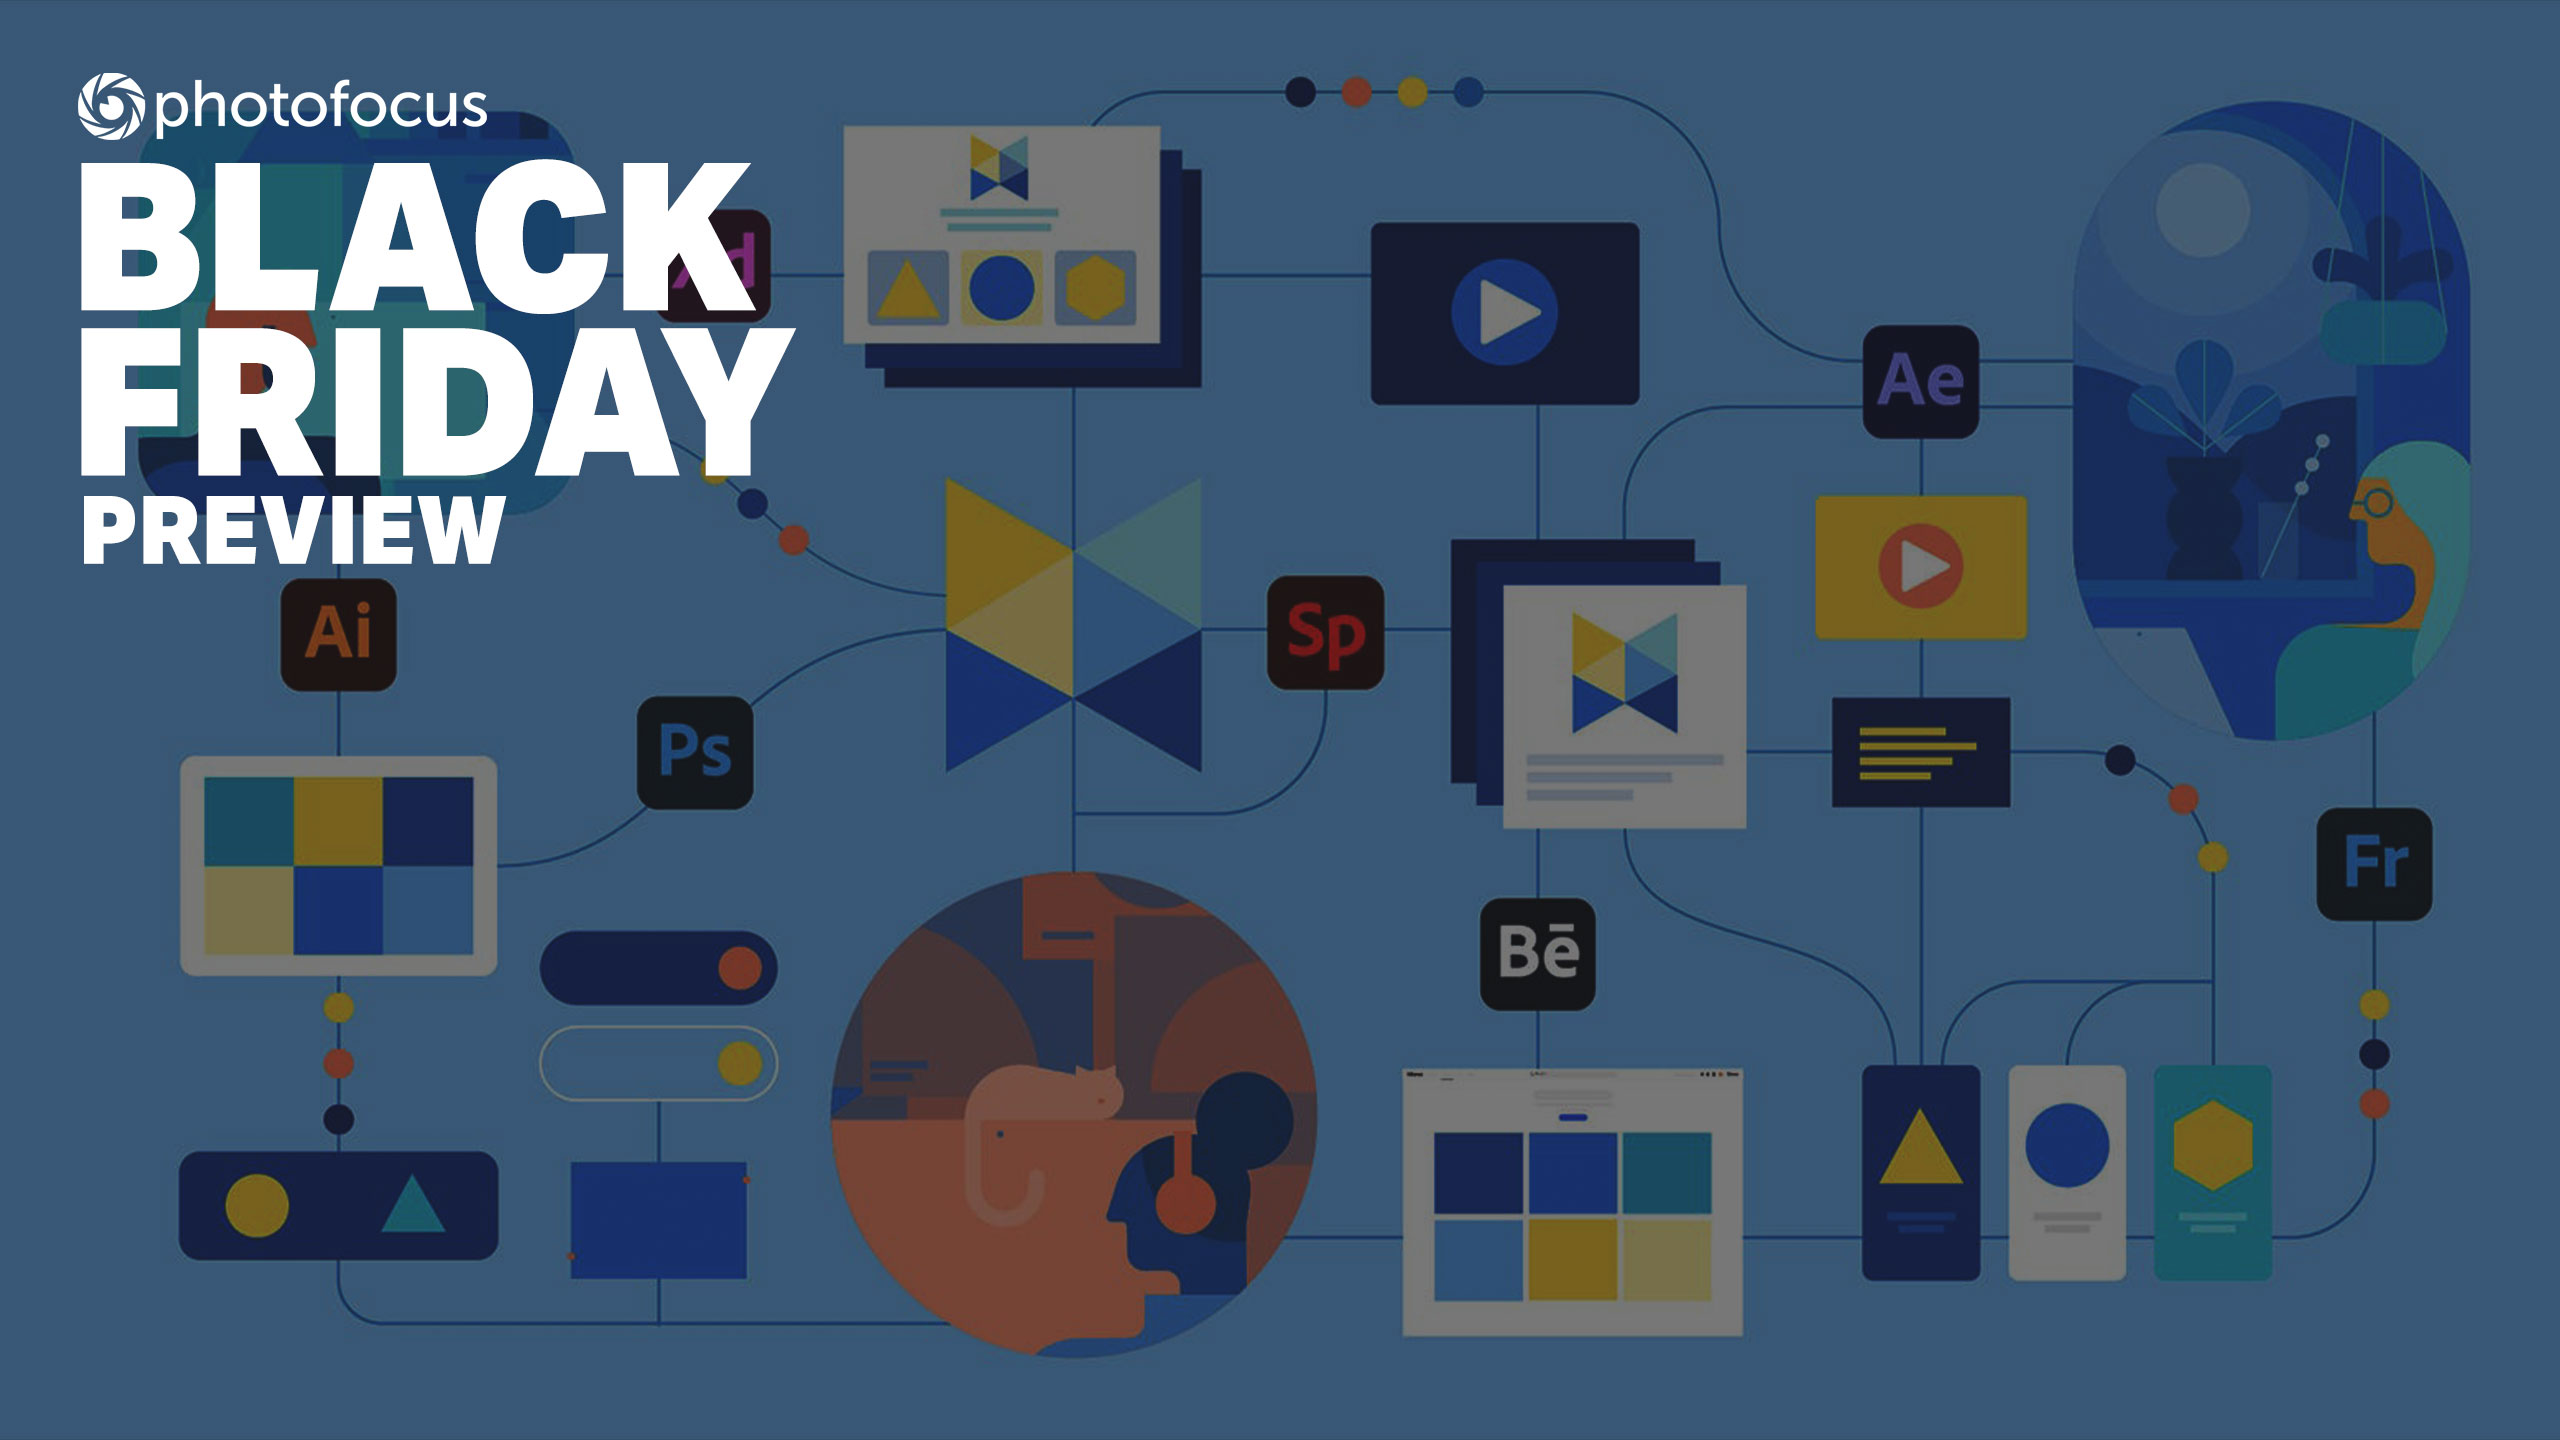 Save up to 25% off Adobe Creative Cloud with early Black Friday savings | Photofocus